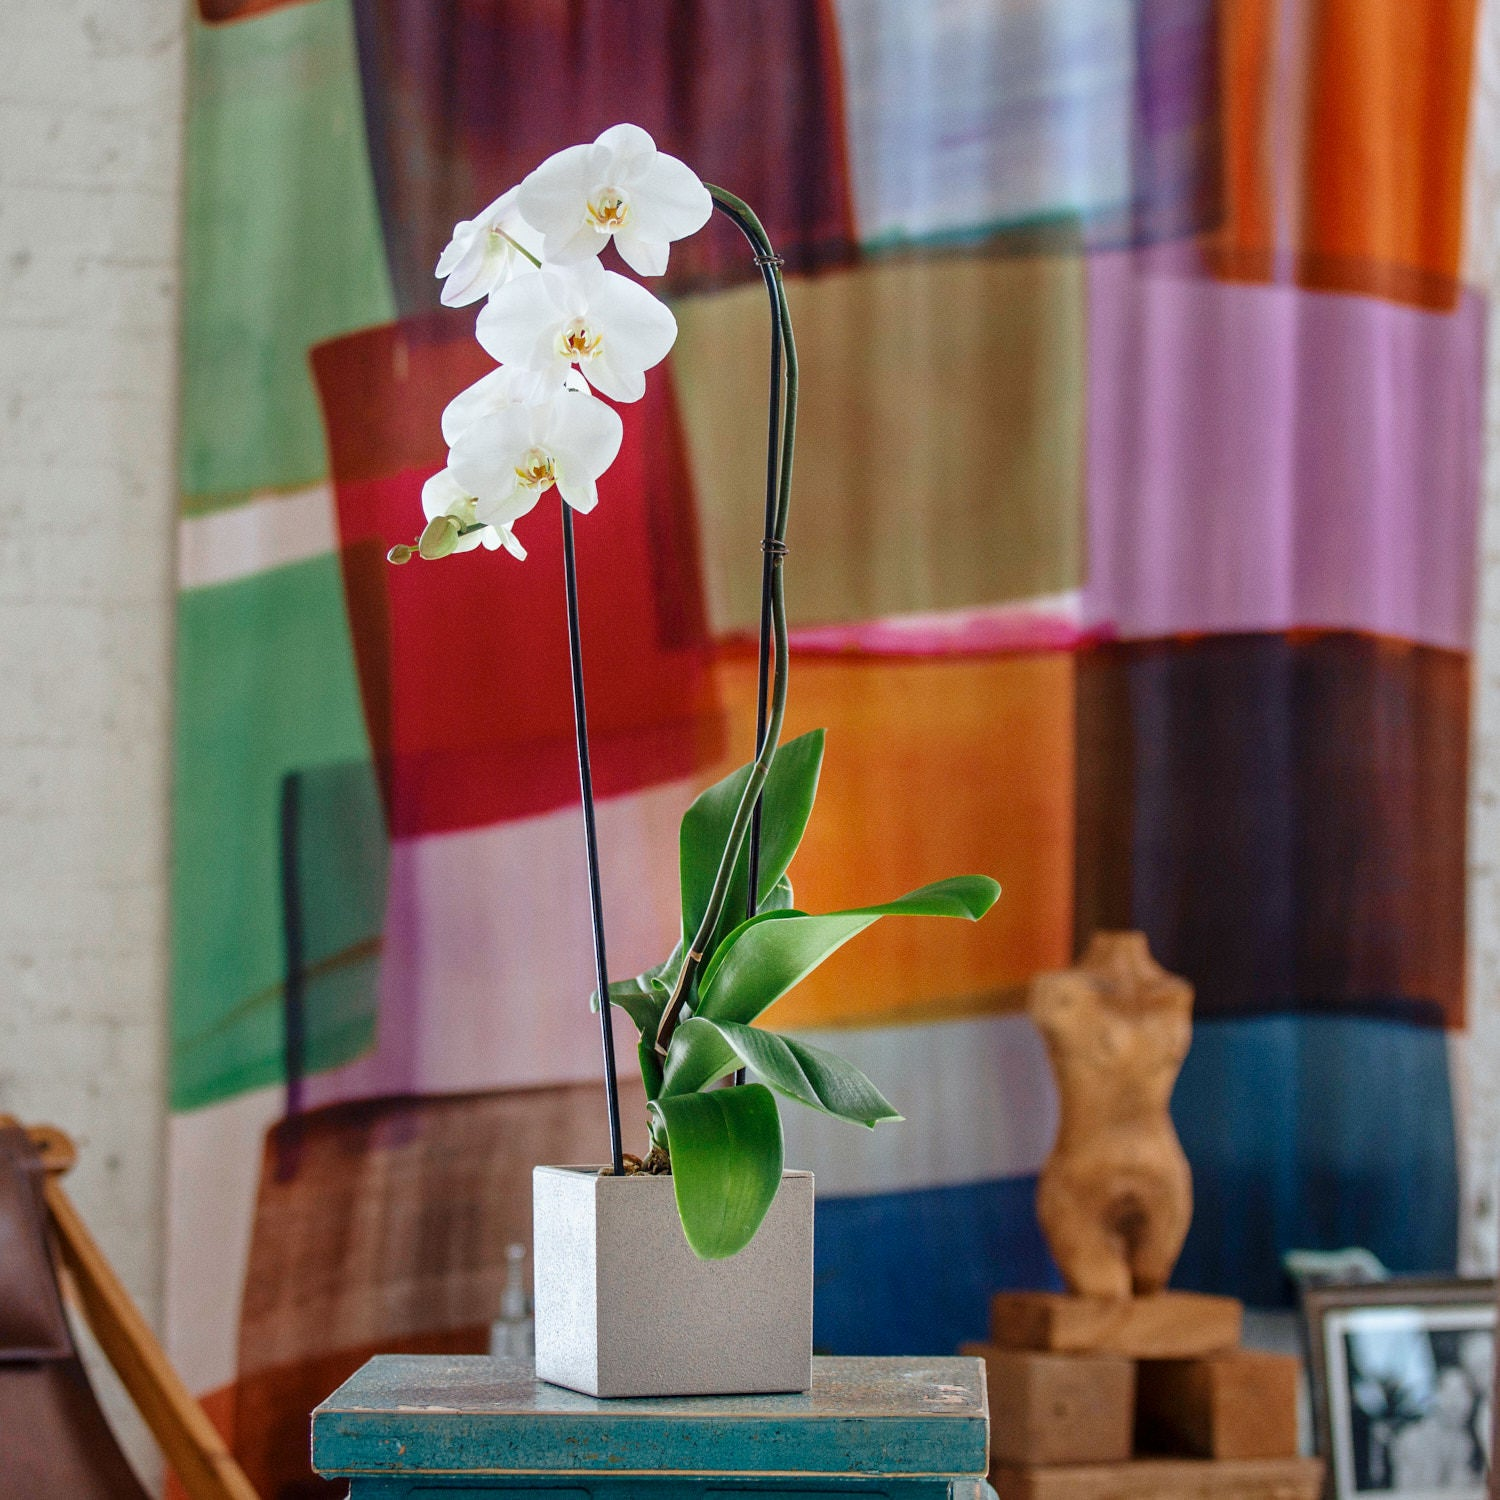 Phalaenopsis Orchid In Lechuza Canto 14 Beige Planter | My City Plants